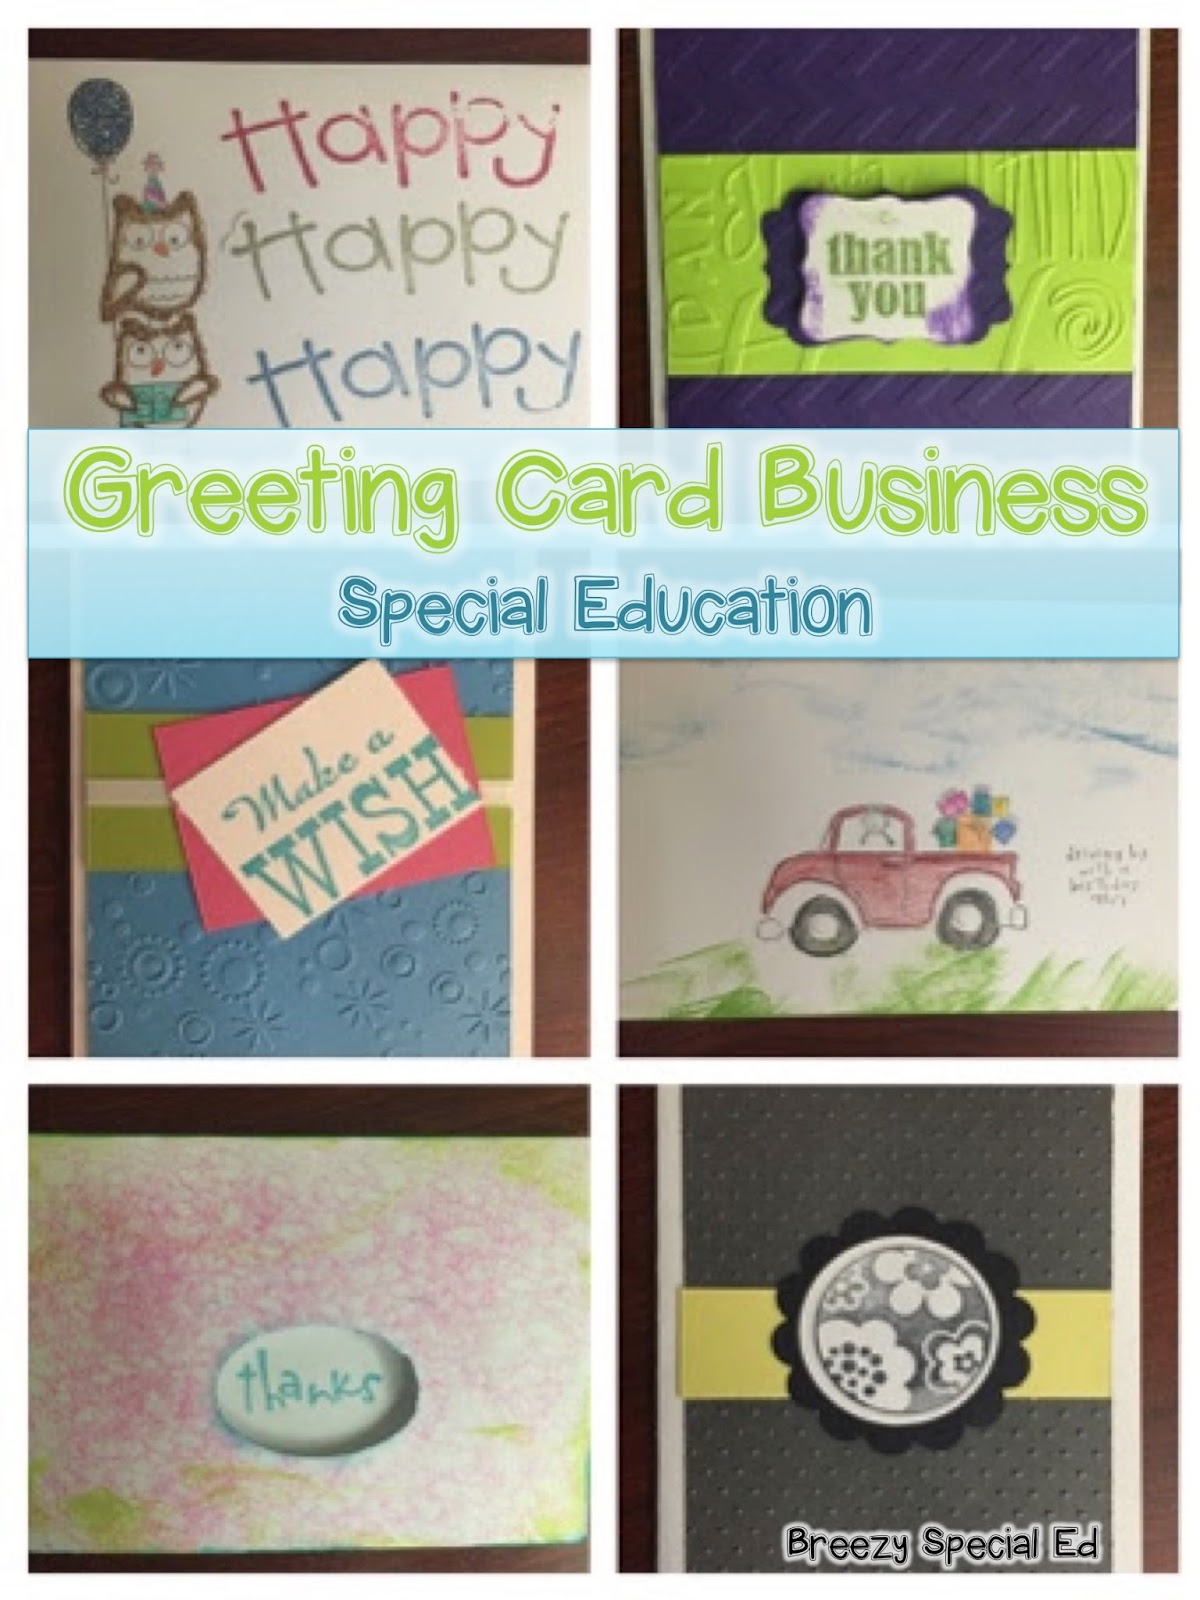 Student Greeting Card Business For Students With Special Needs